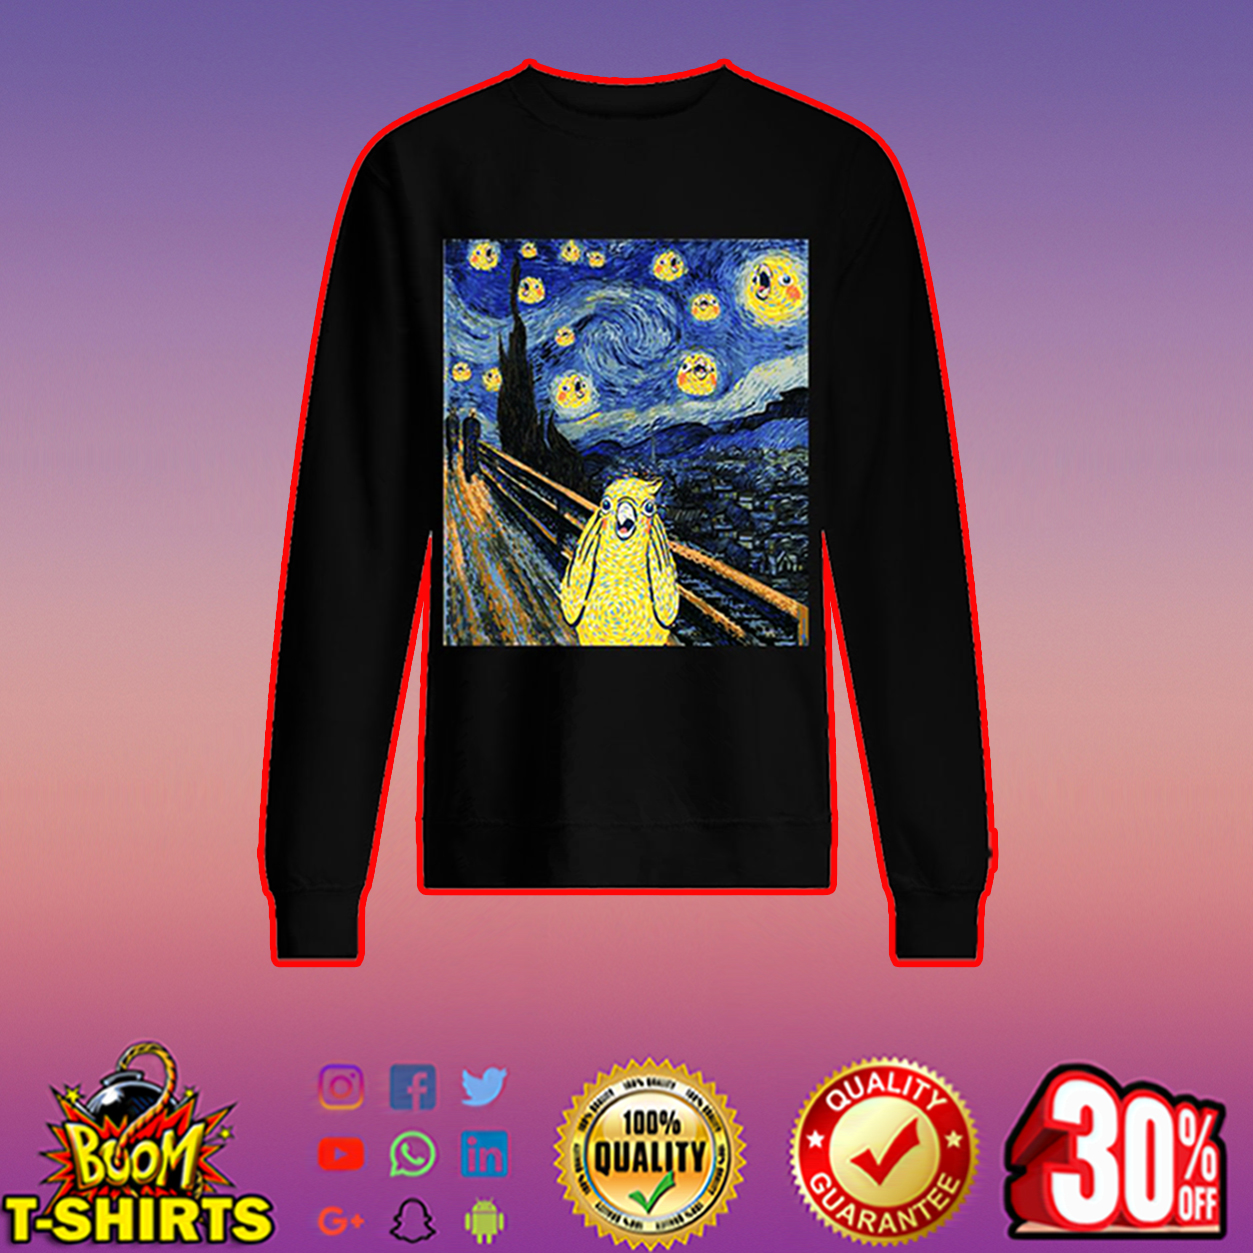 The scream bird merch sweatshirt